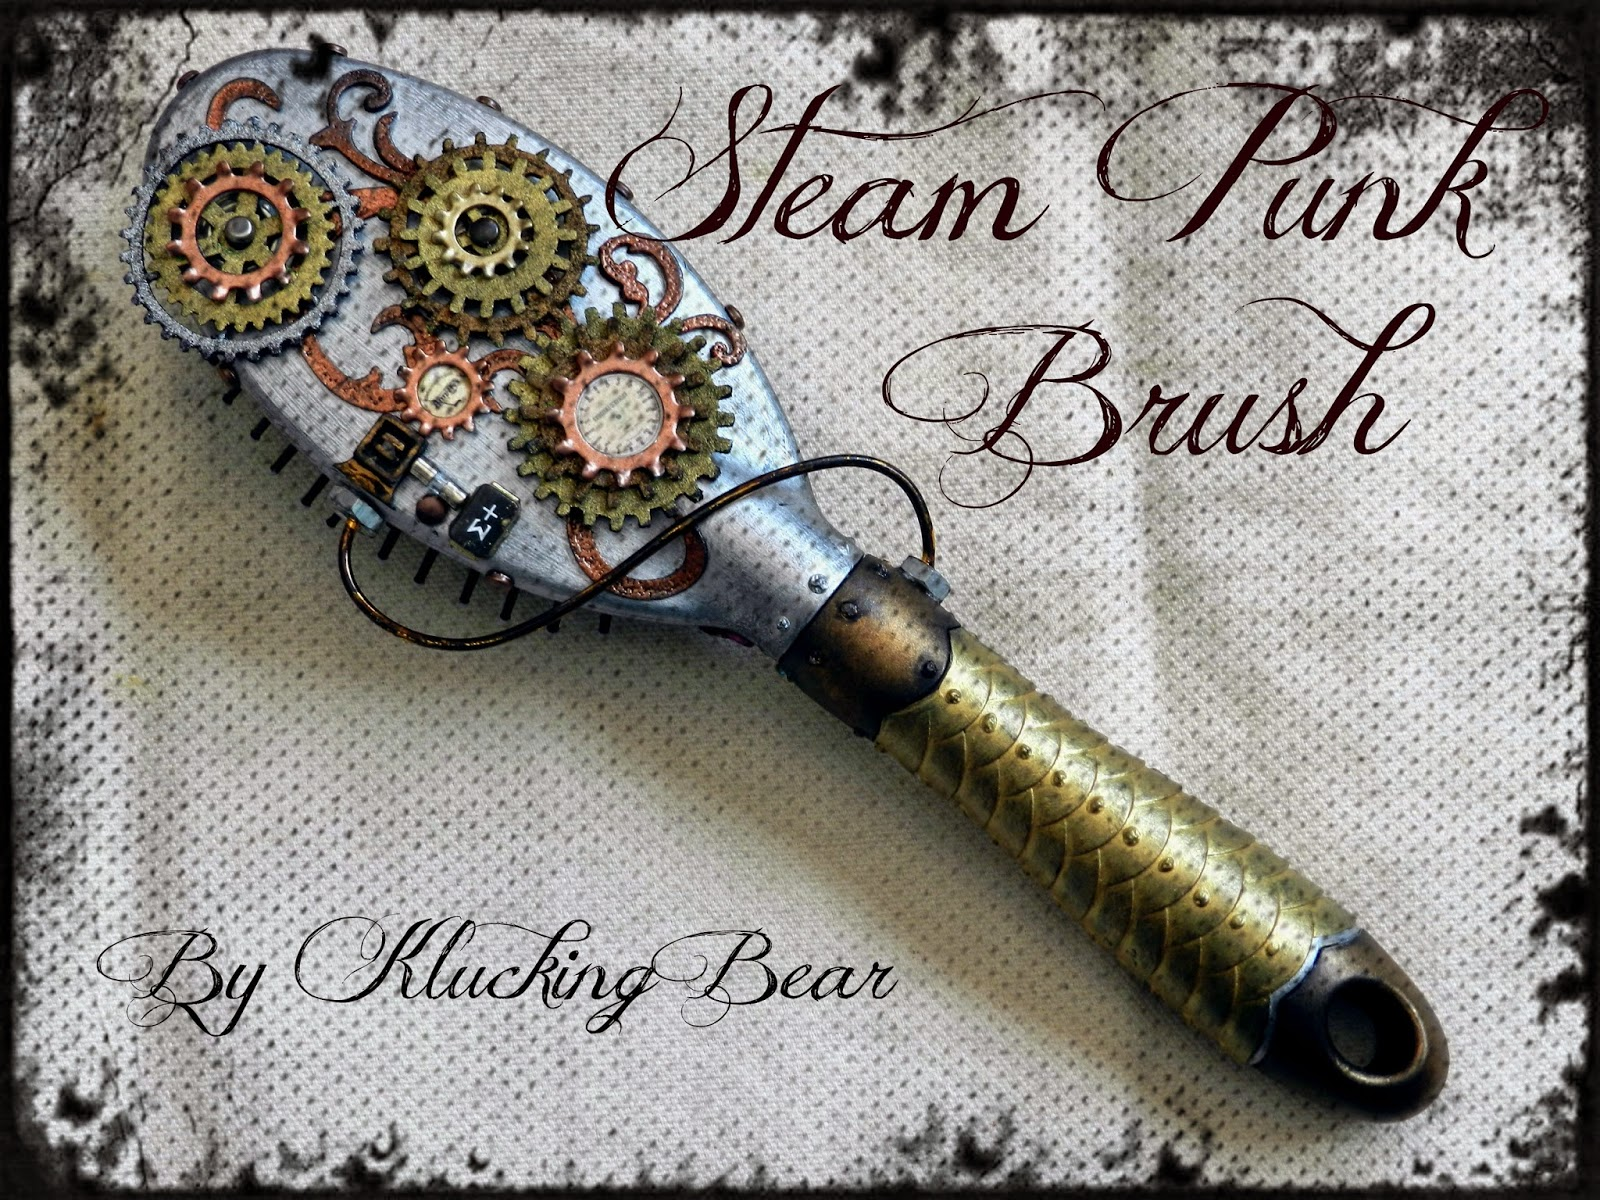 http://kluckingbear.blogspot.co.at/2014/04/steampunk-beauty.html